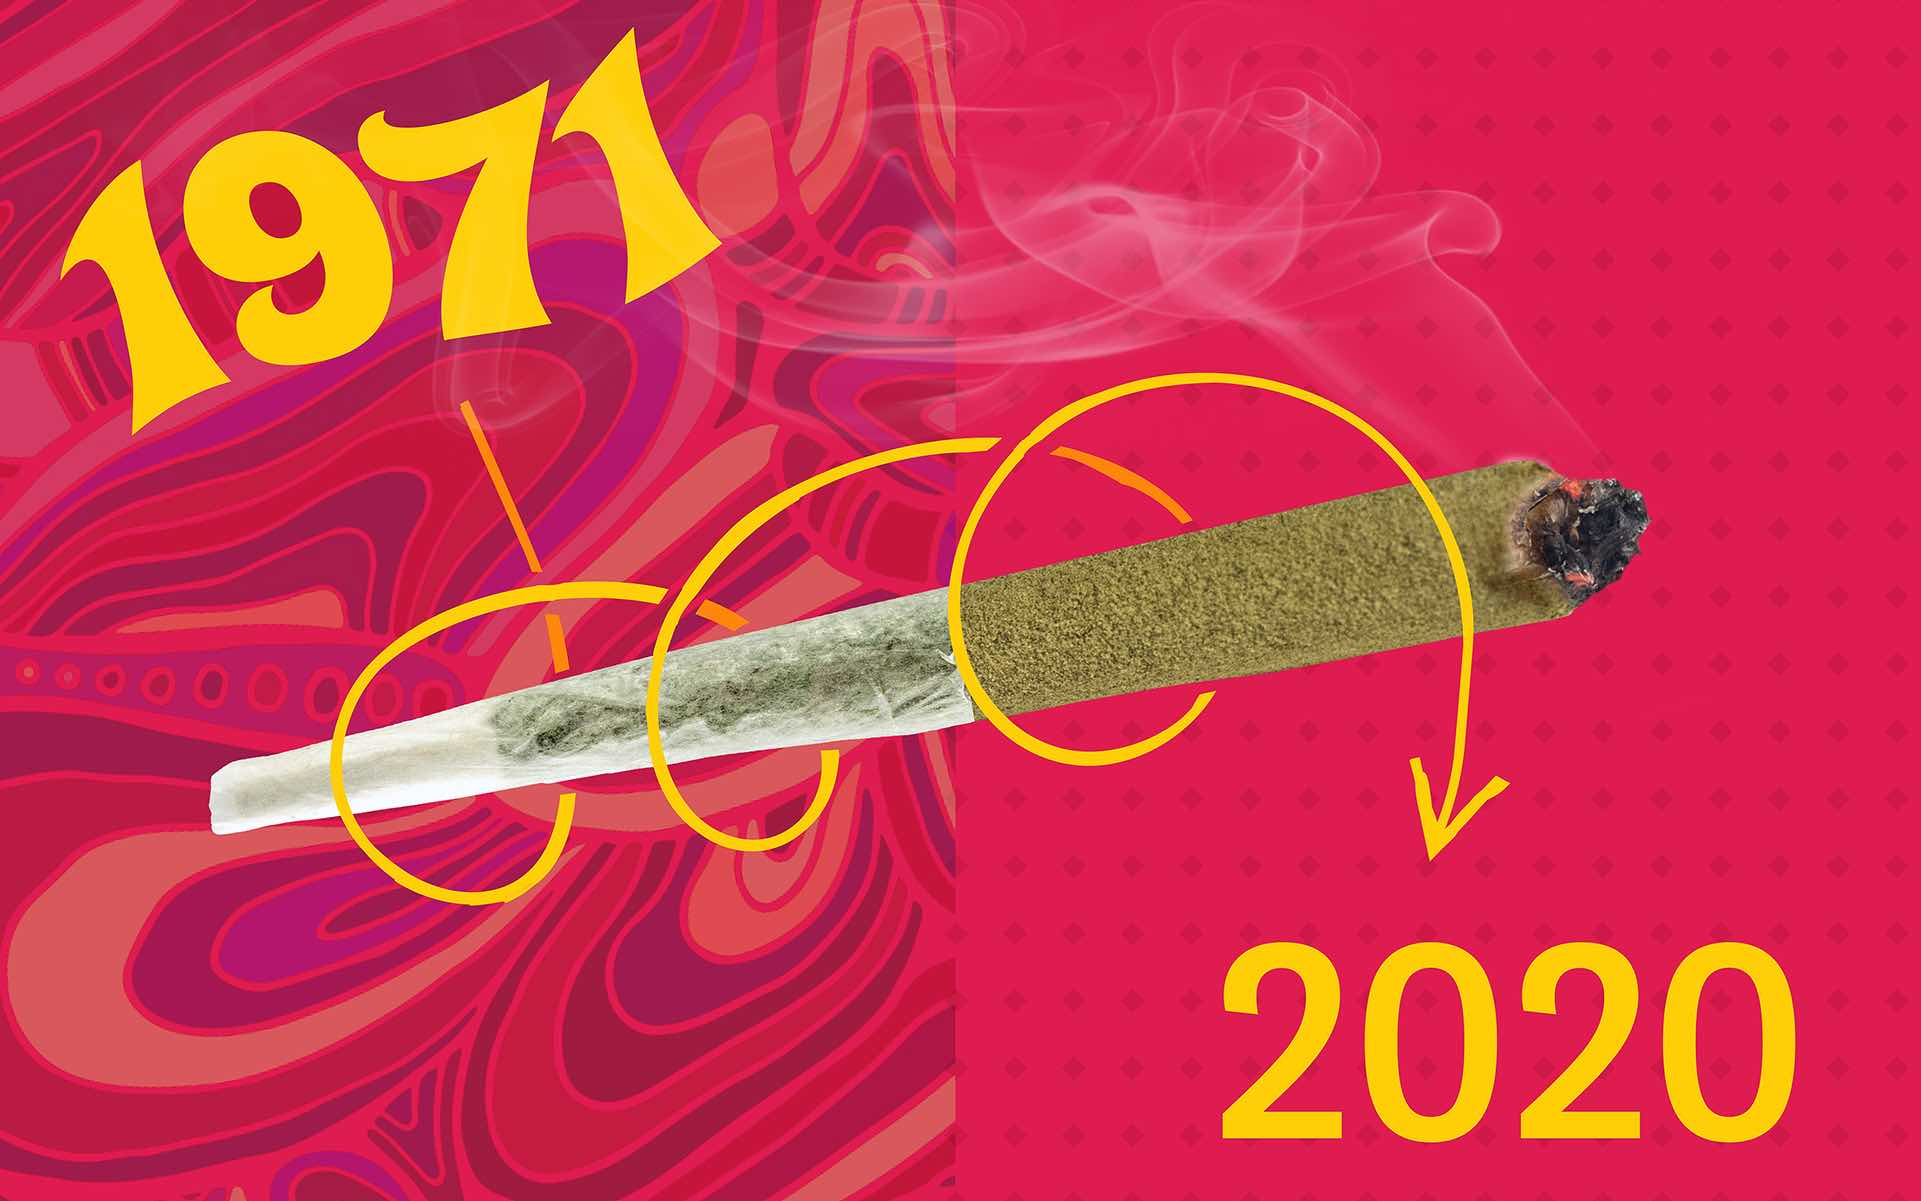 420's meaning has grown over time. (Leafly)